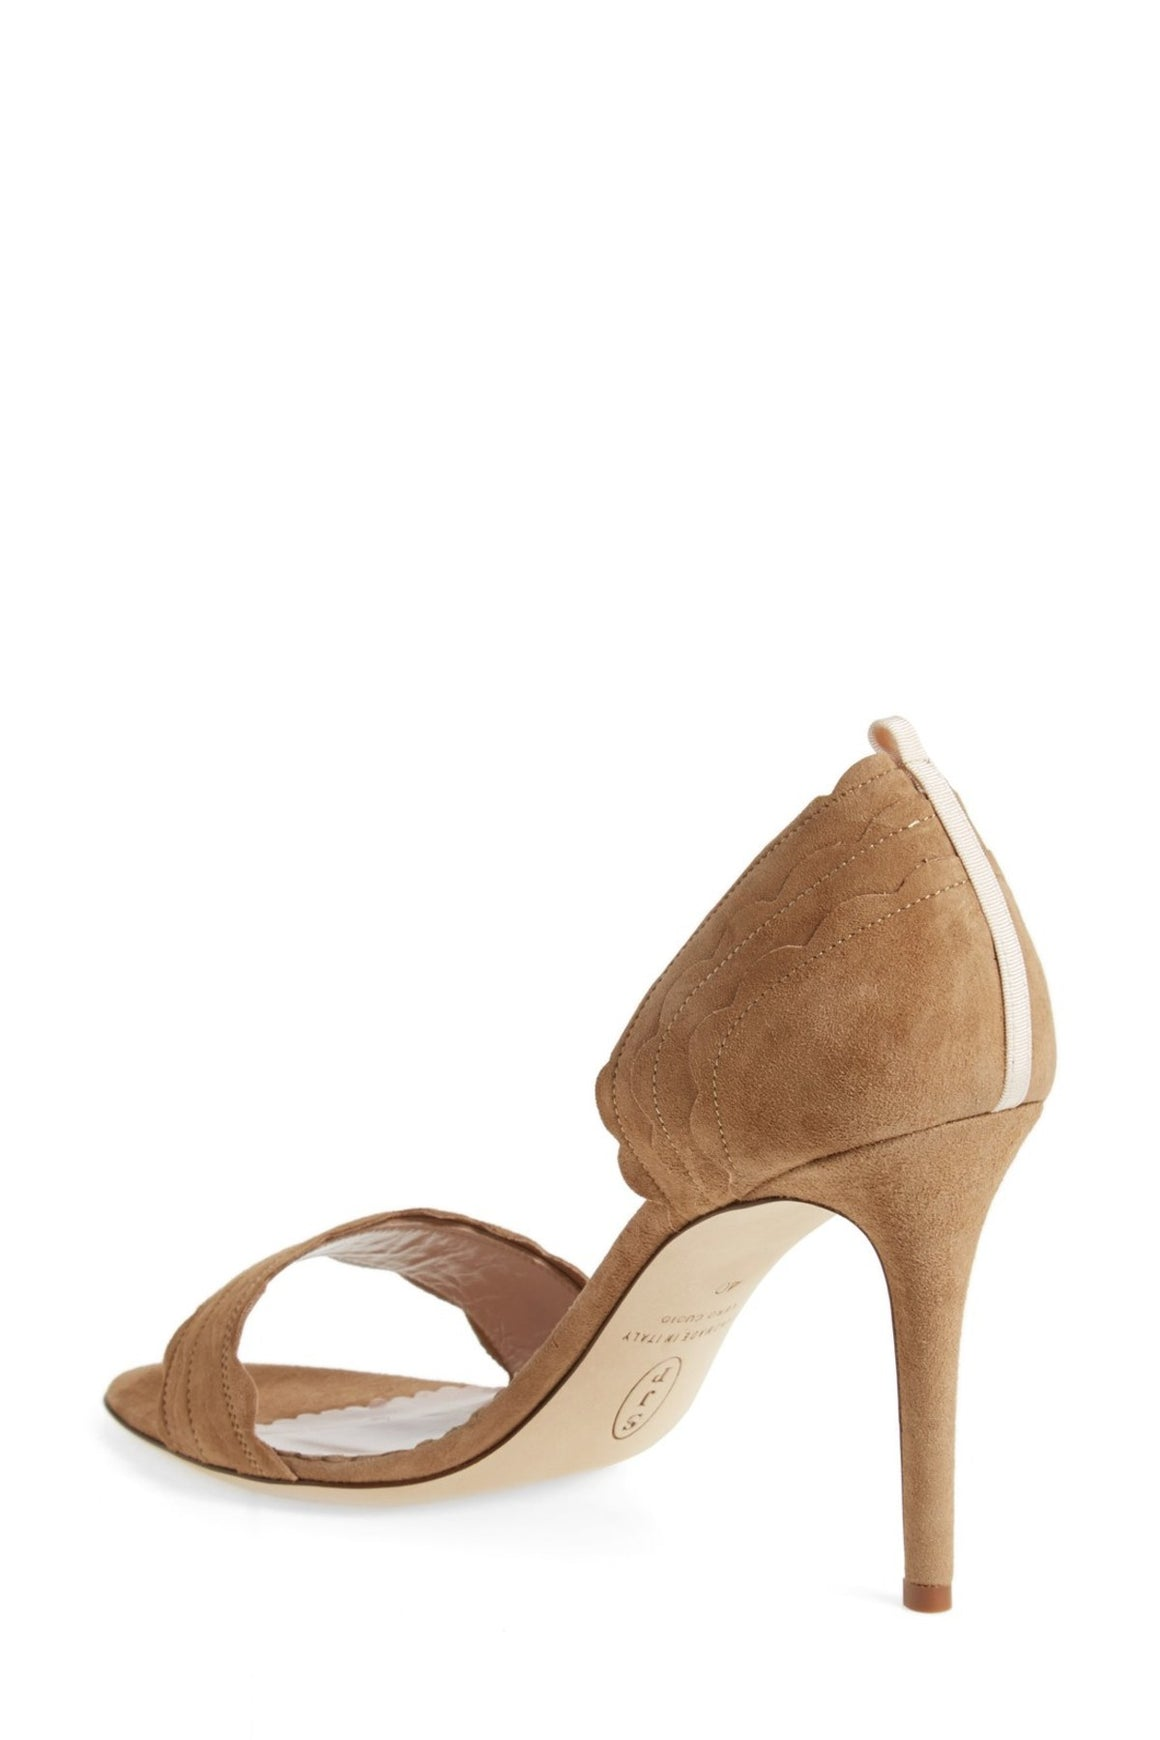 Bobbie Suede Heels-Shoes-SJP Collection-Max & Riley